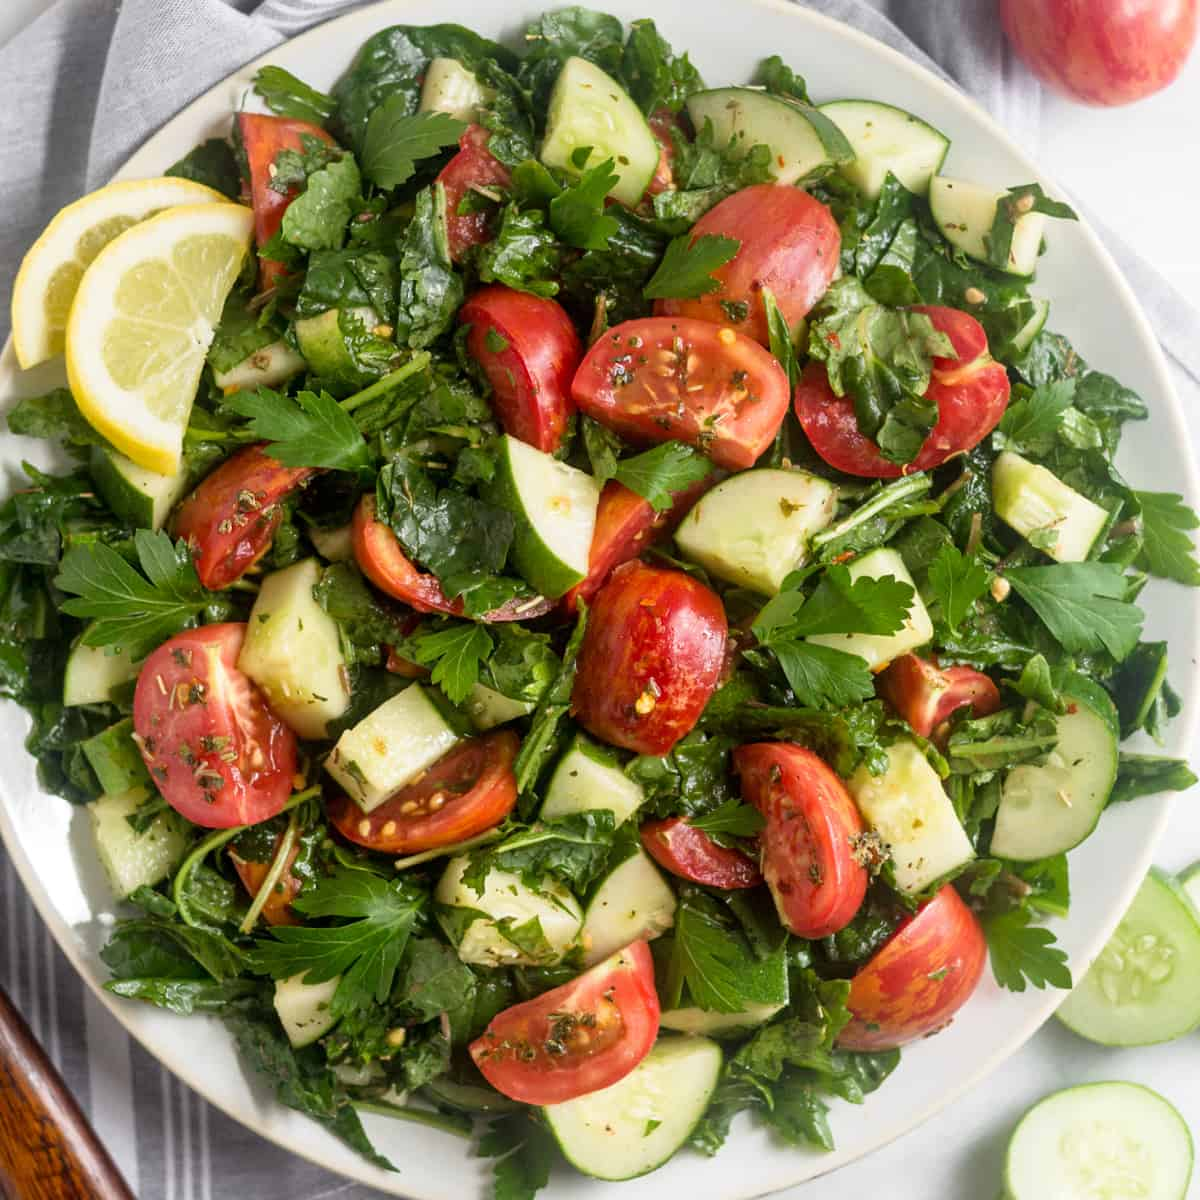 Large white plate filled with Chopped Tomato Cucumber Kale Salad surround by salad tongs, sliced cucumber, and tomatoes